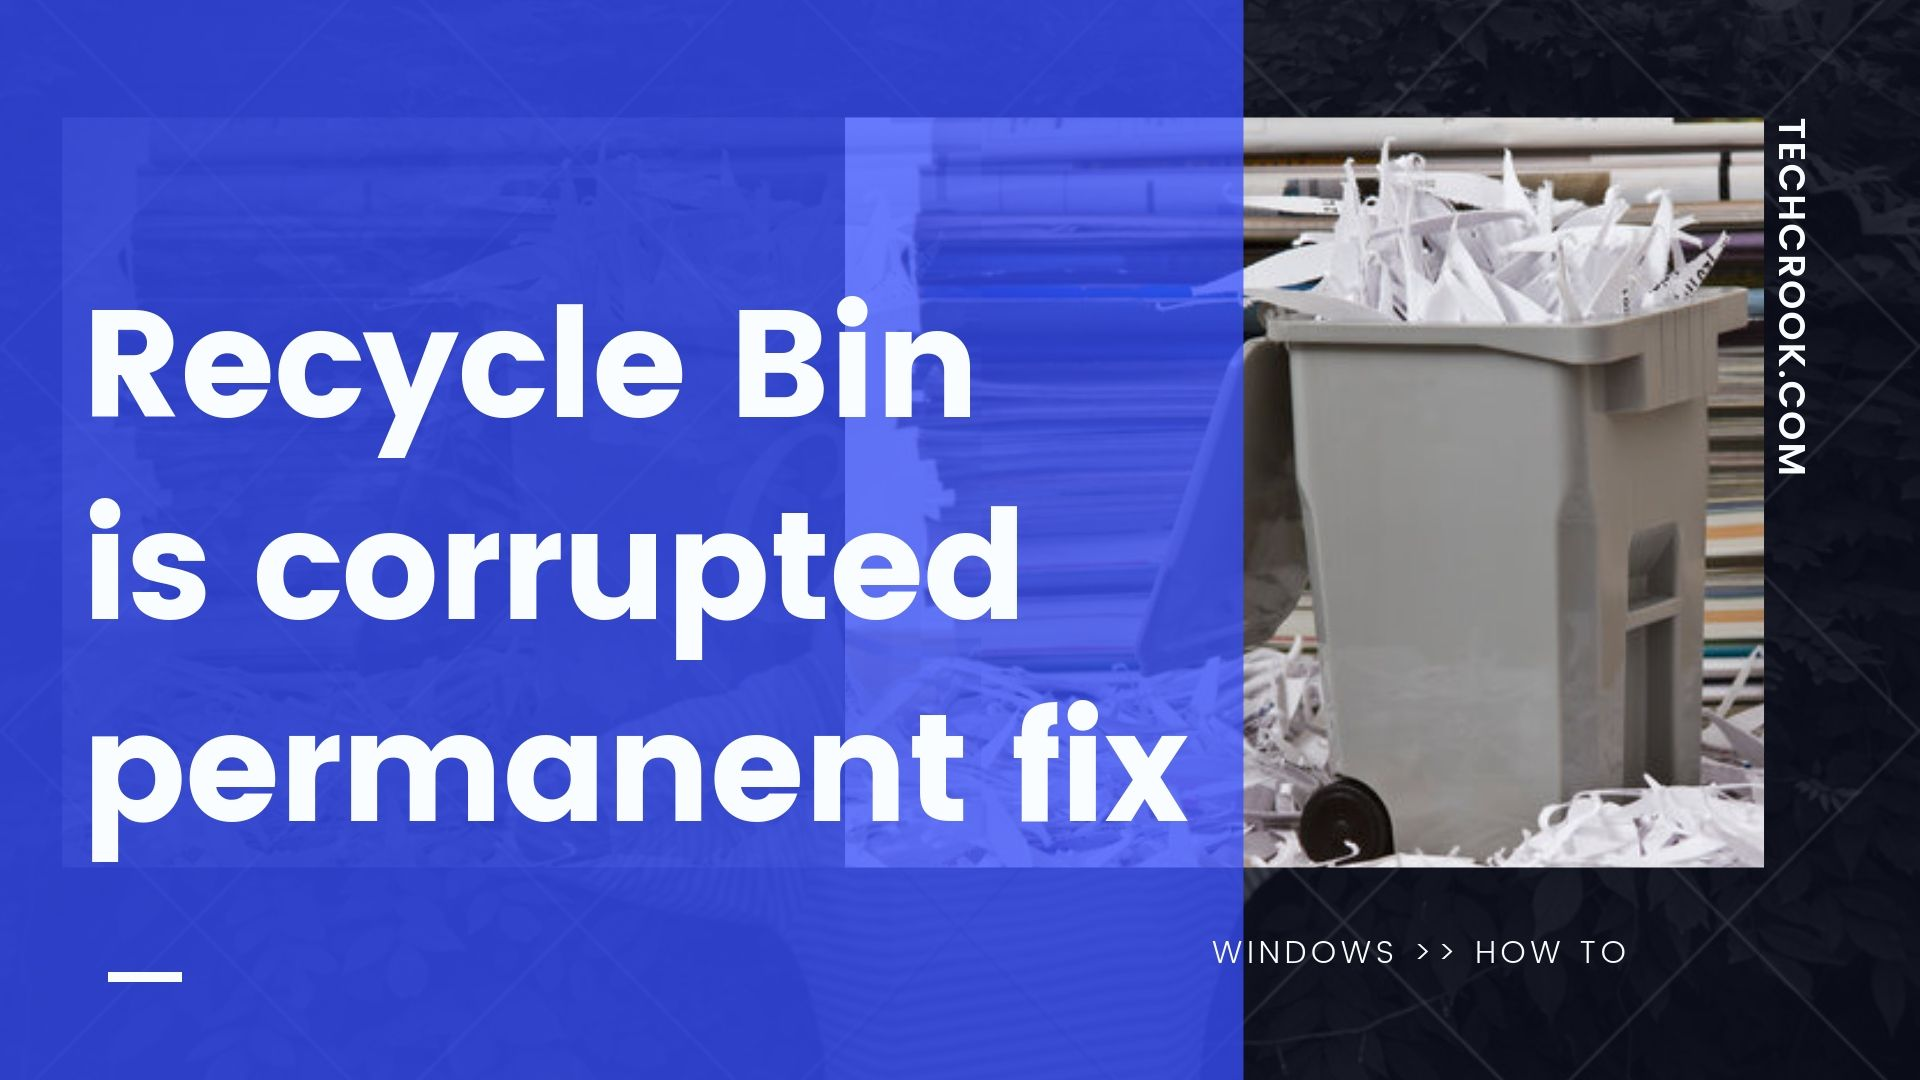 Recycle Bin is corrupted permanent fix for windows 8/10